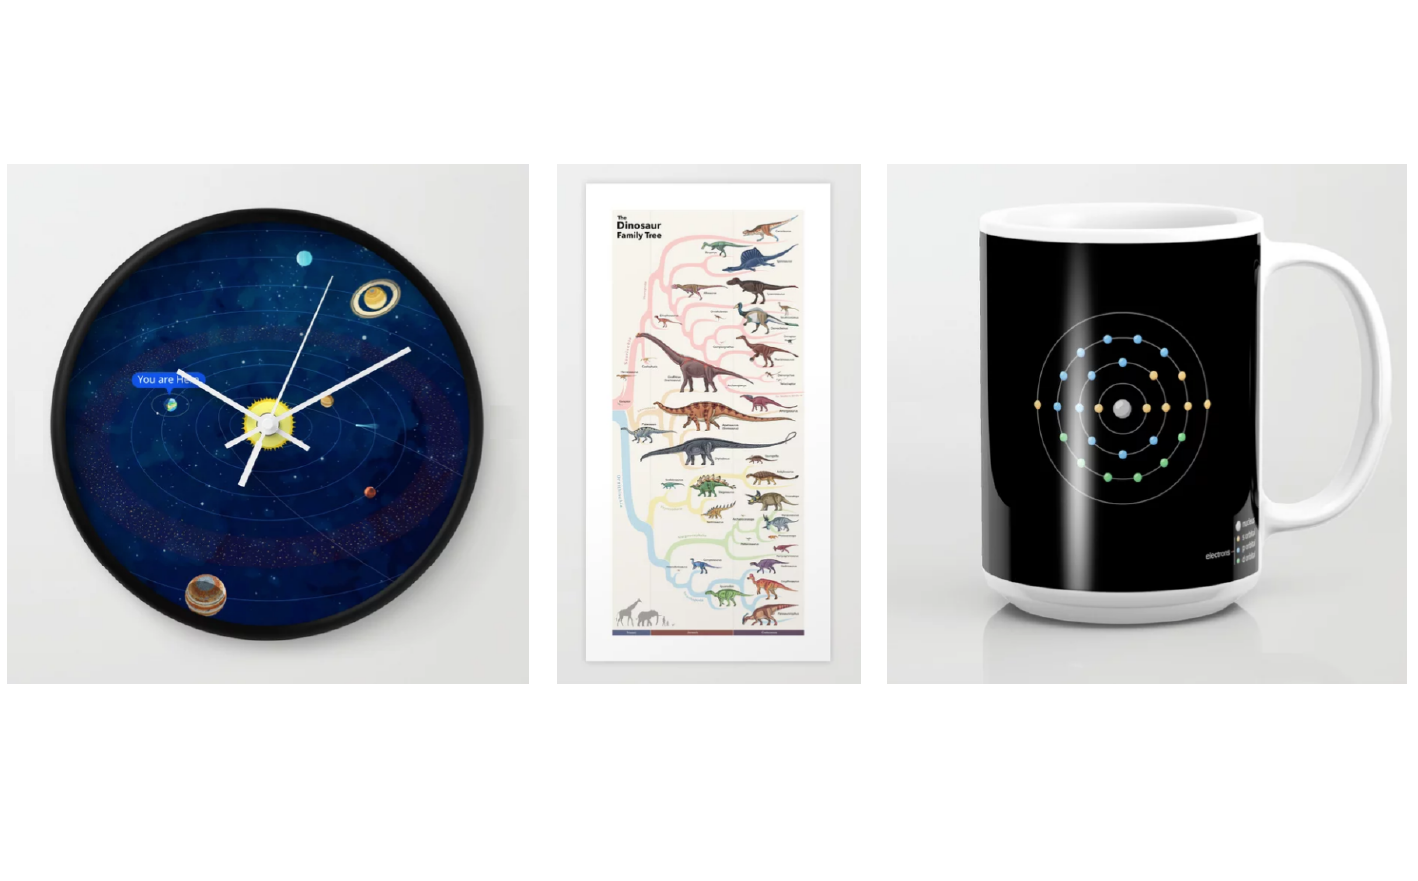 Graphic showing a clock made from the Solar System, a poster made from a dinosaur family tree, and a mug made from a Uranium atom.